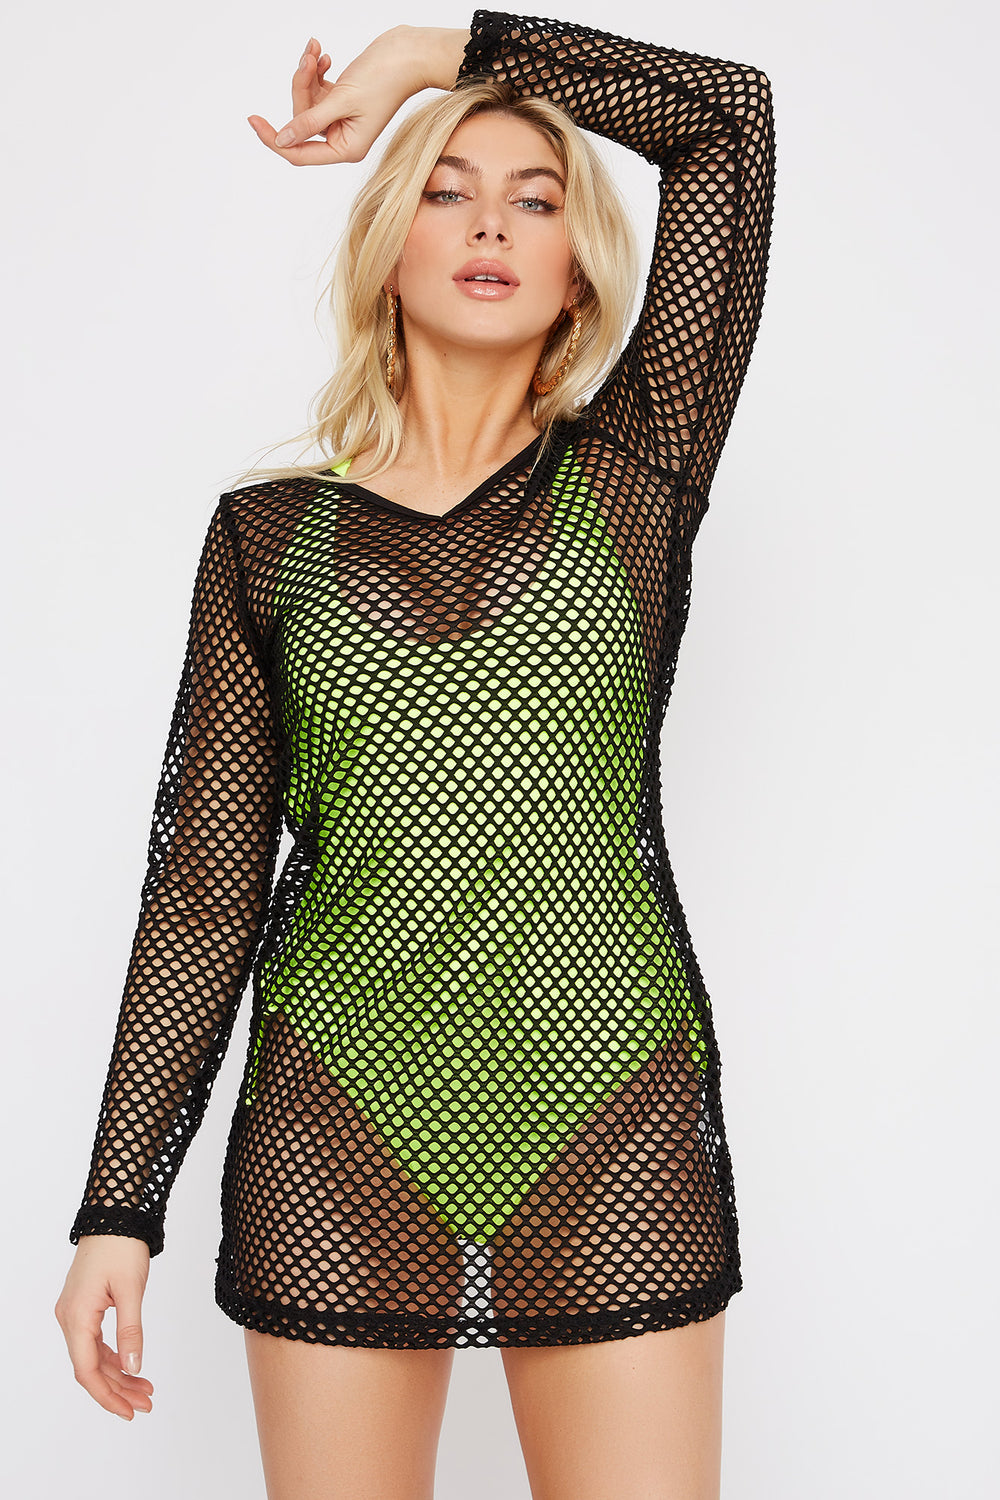 Long Sleeve V-Neck Net Beach Dress Black